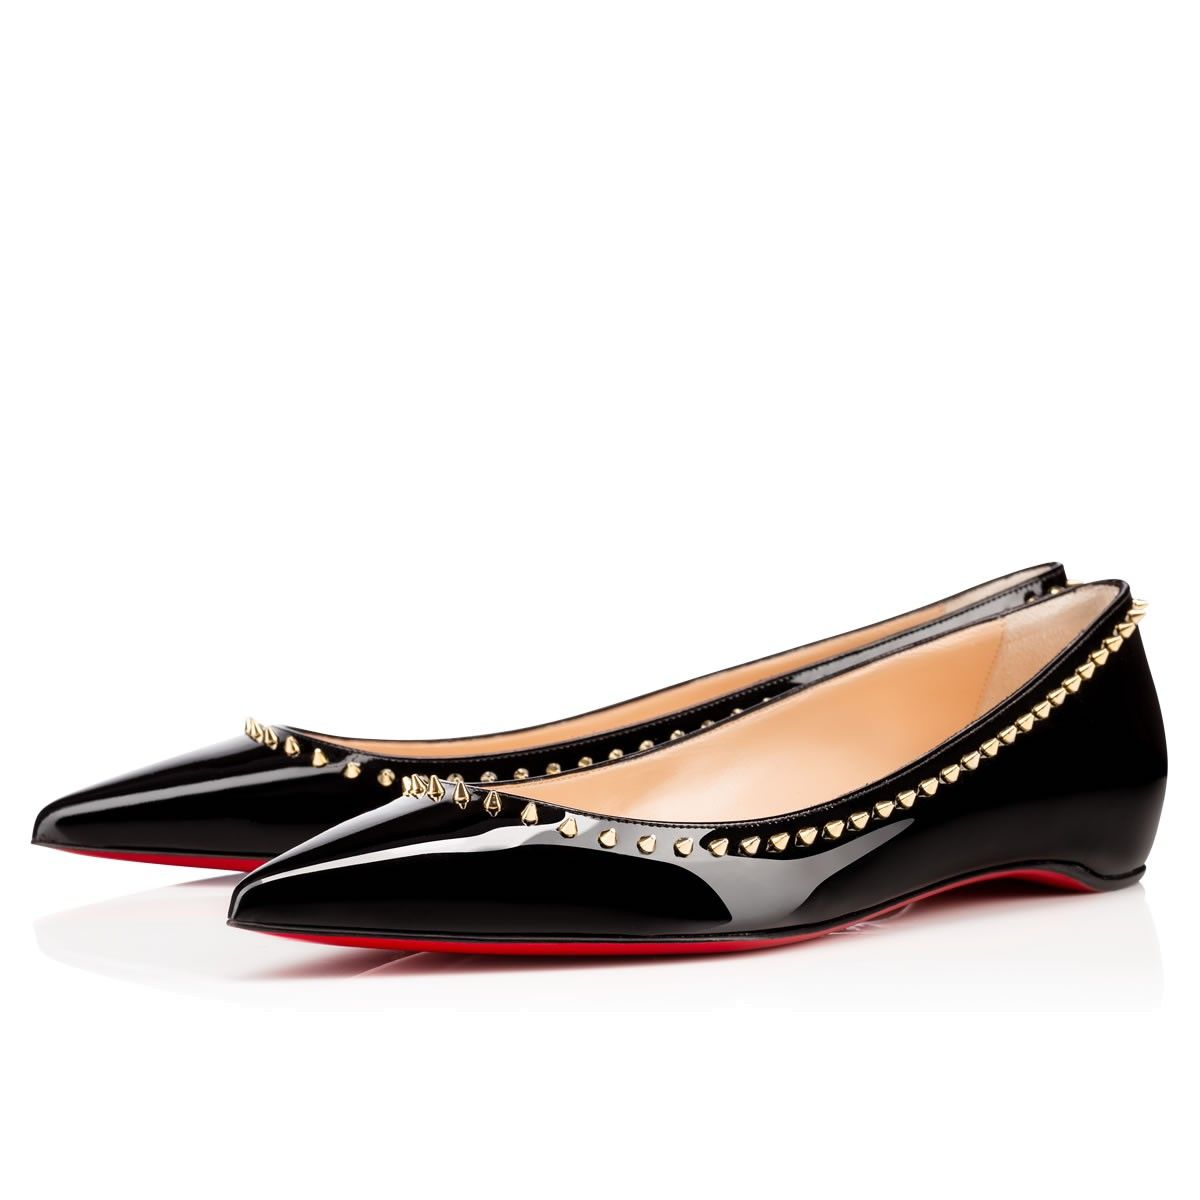 louboutin chaussures plates